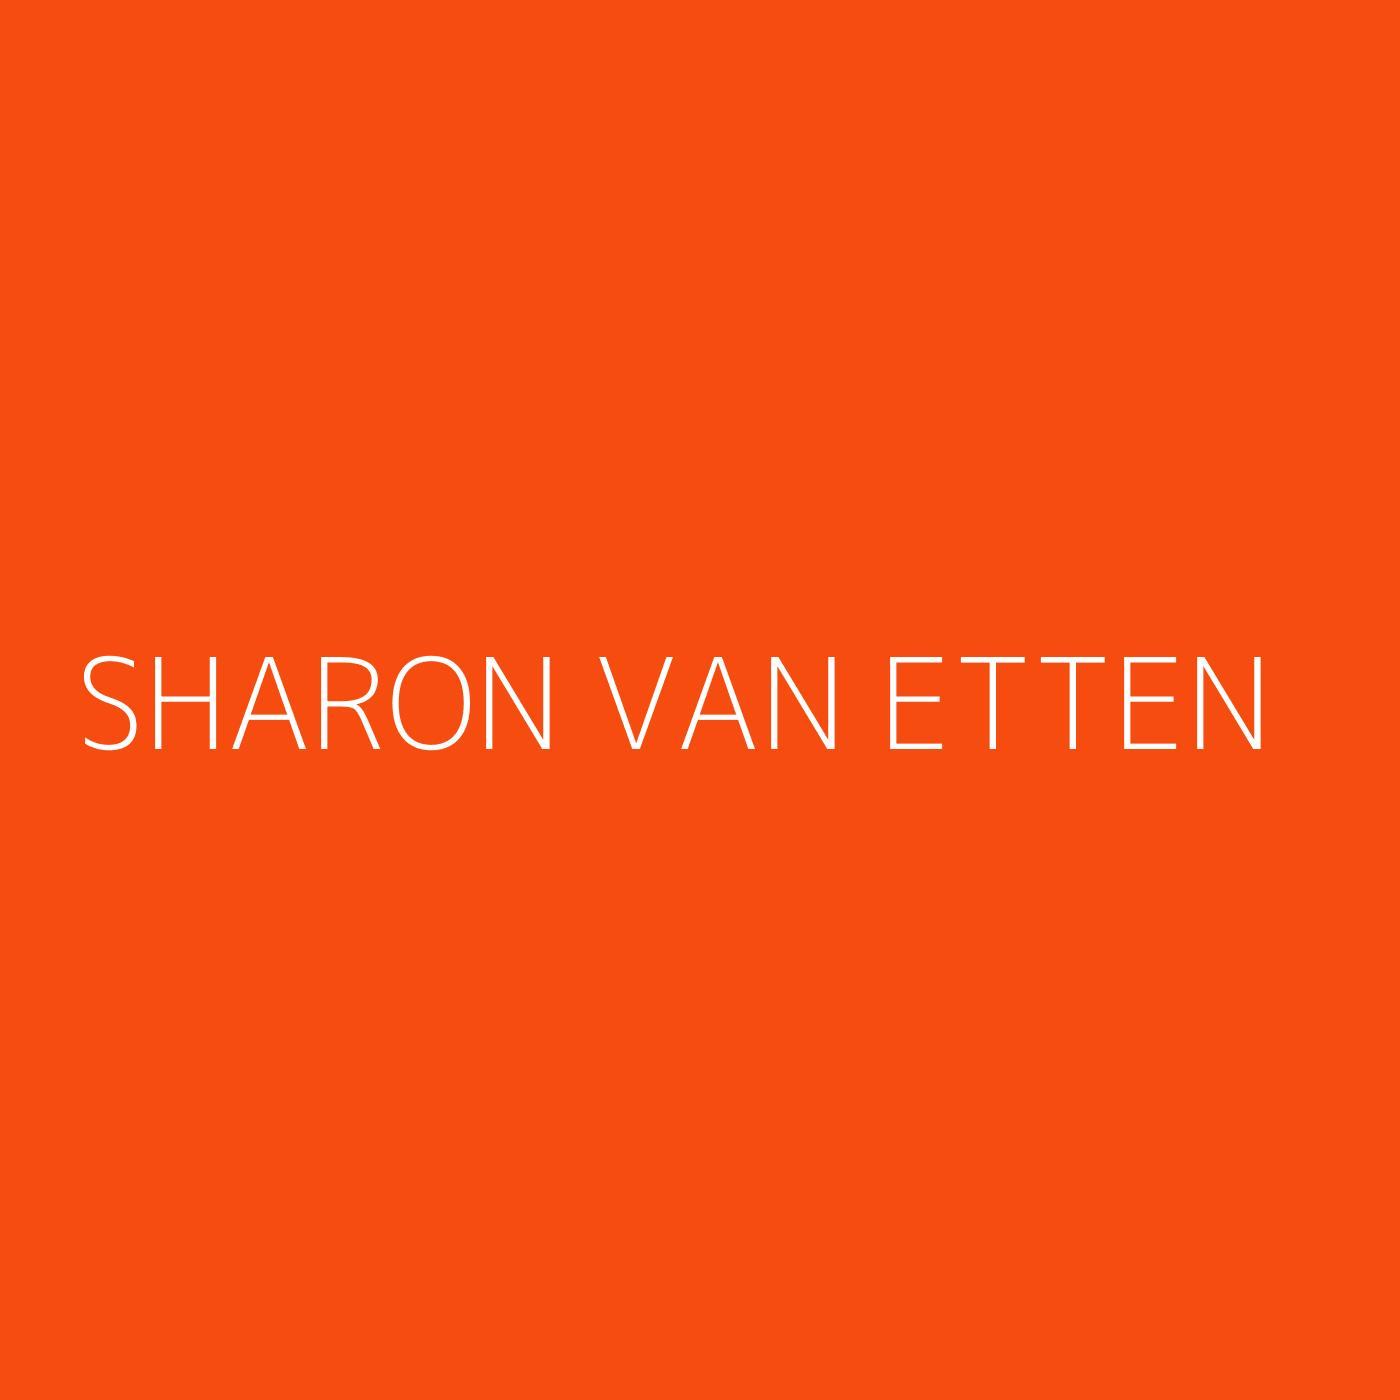 Sharon Van Etten Playlist Artwork